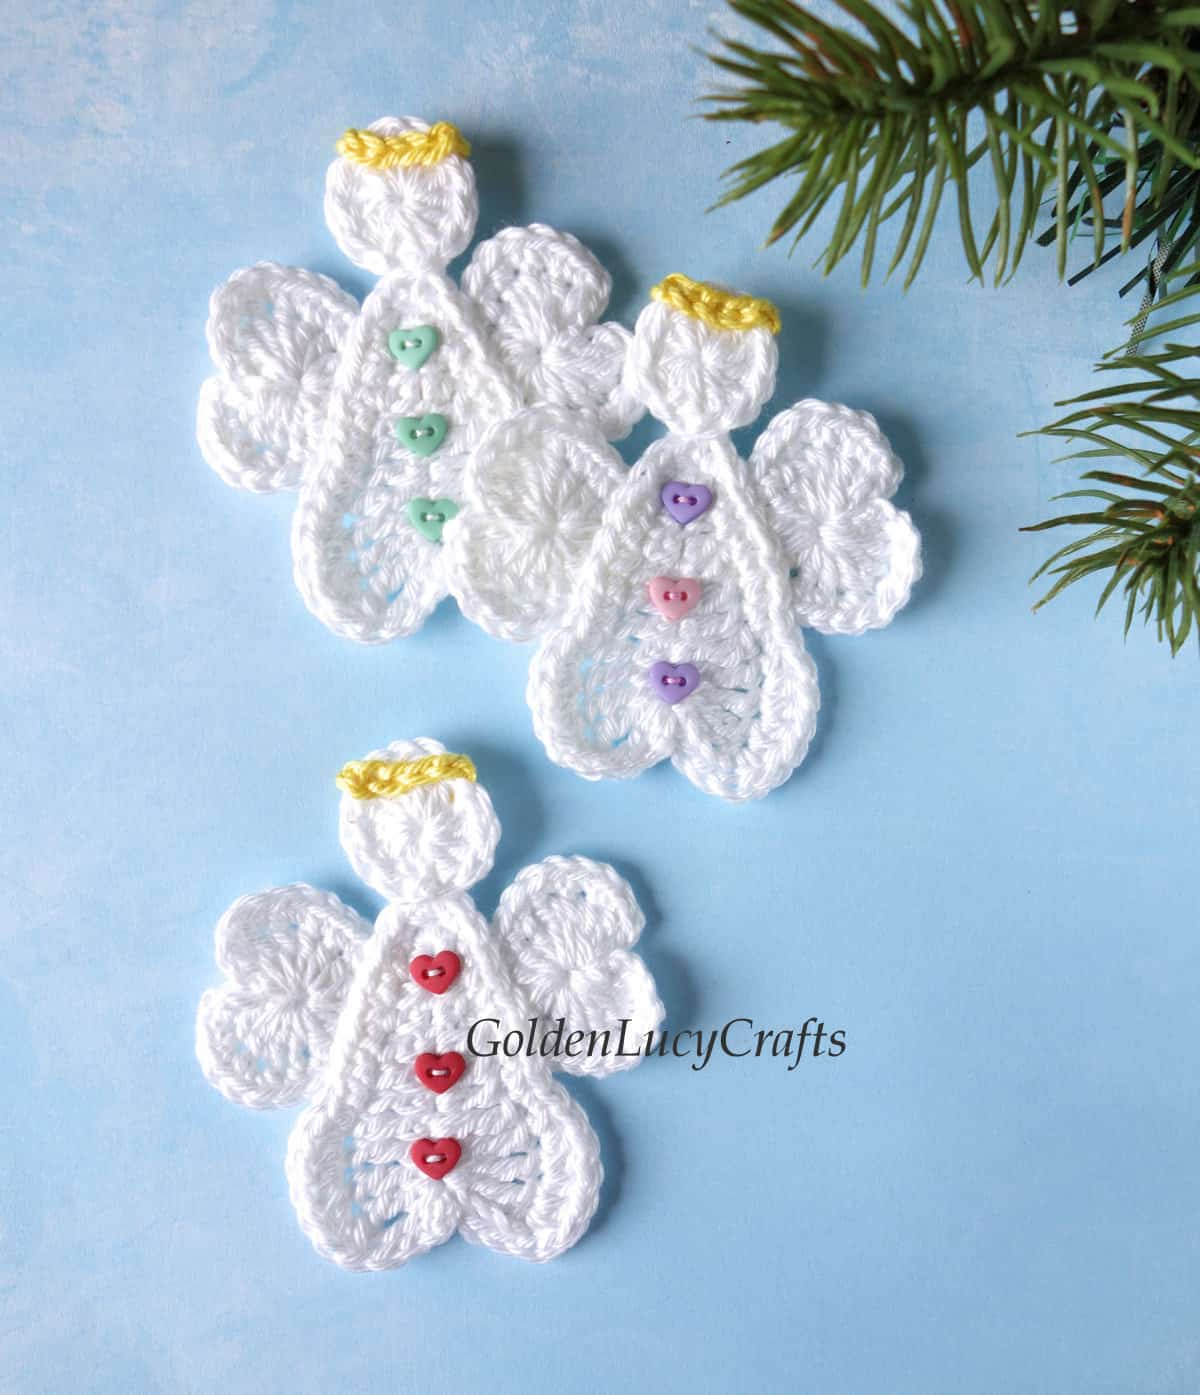 Three crochet angels applique